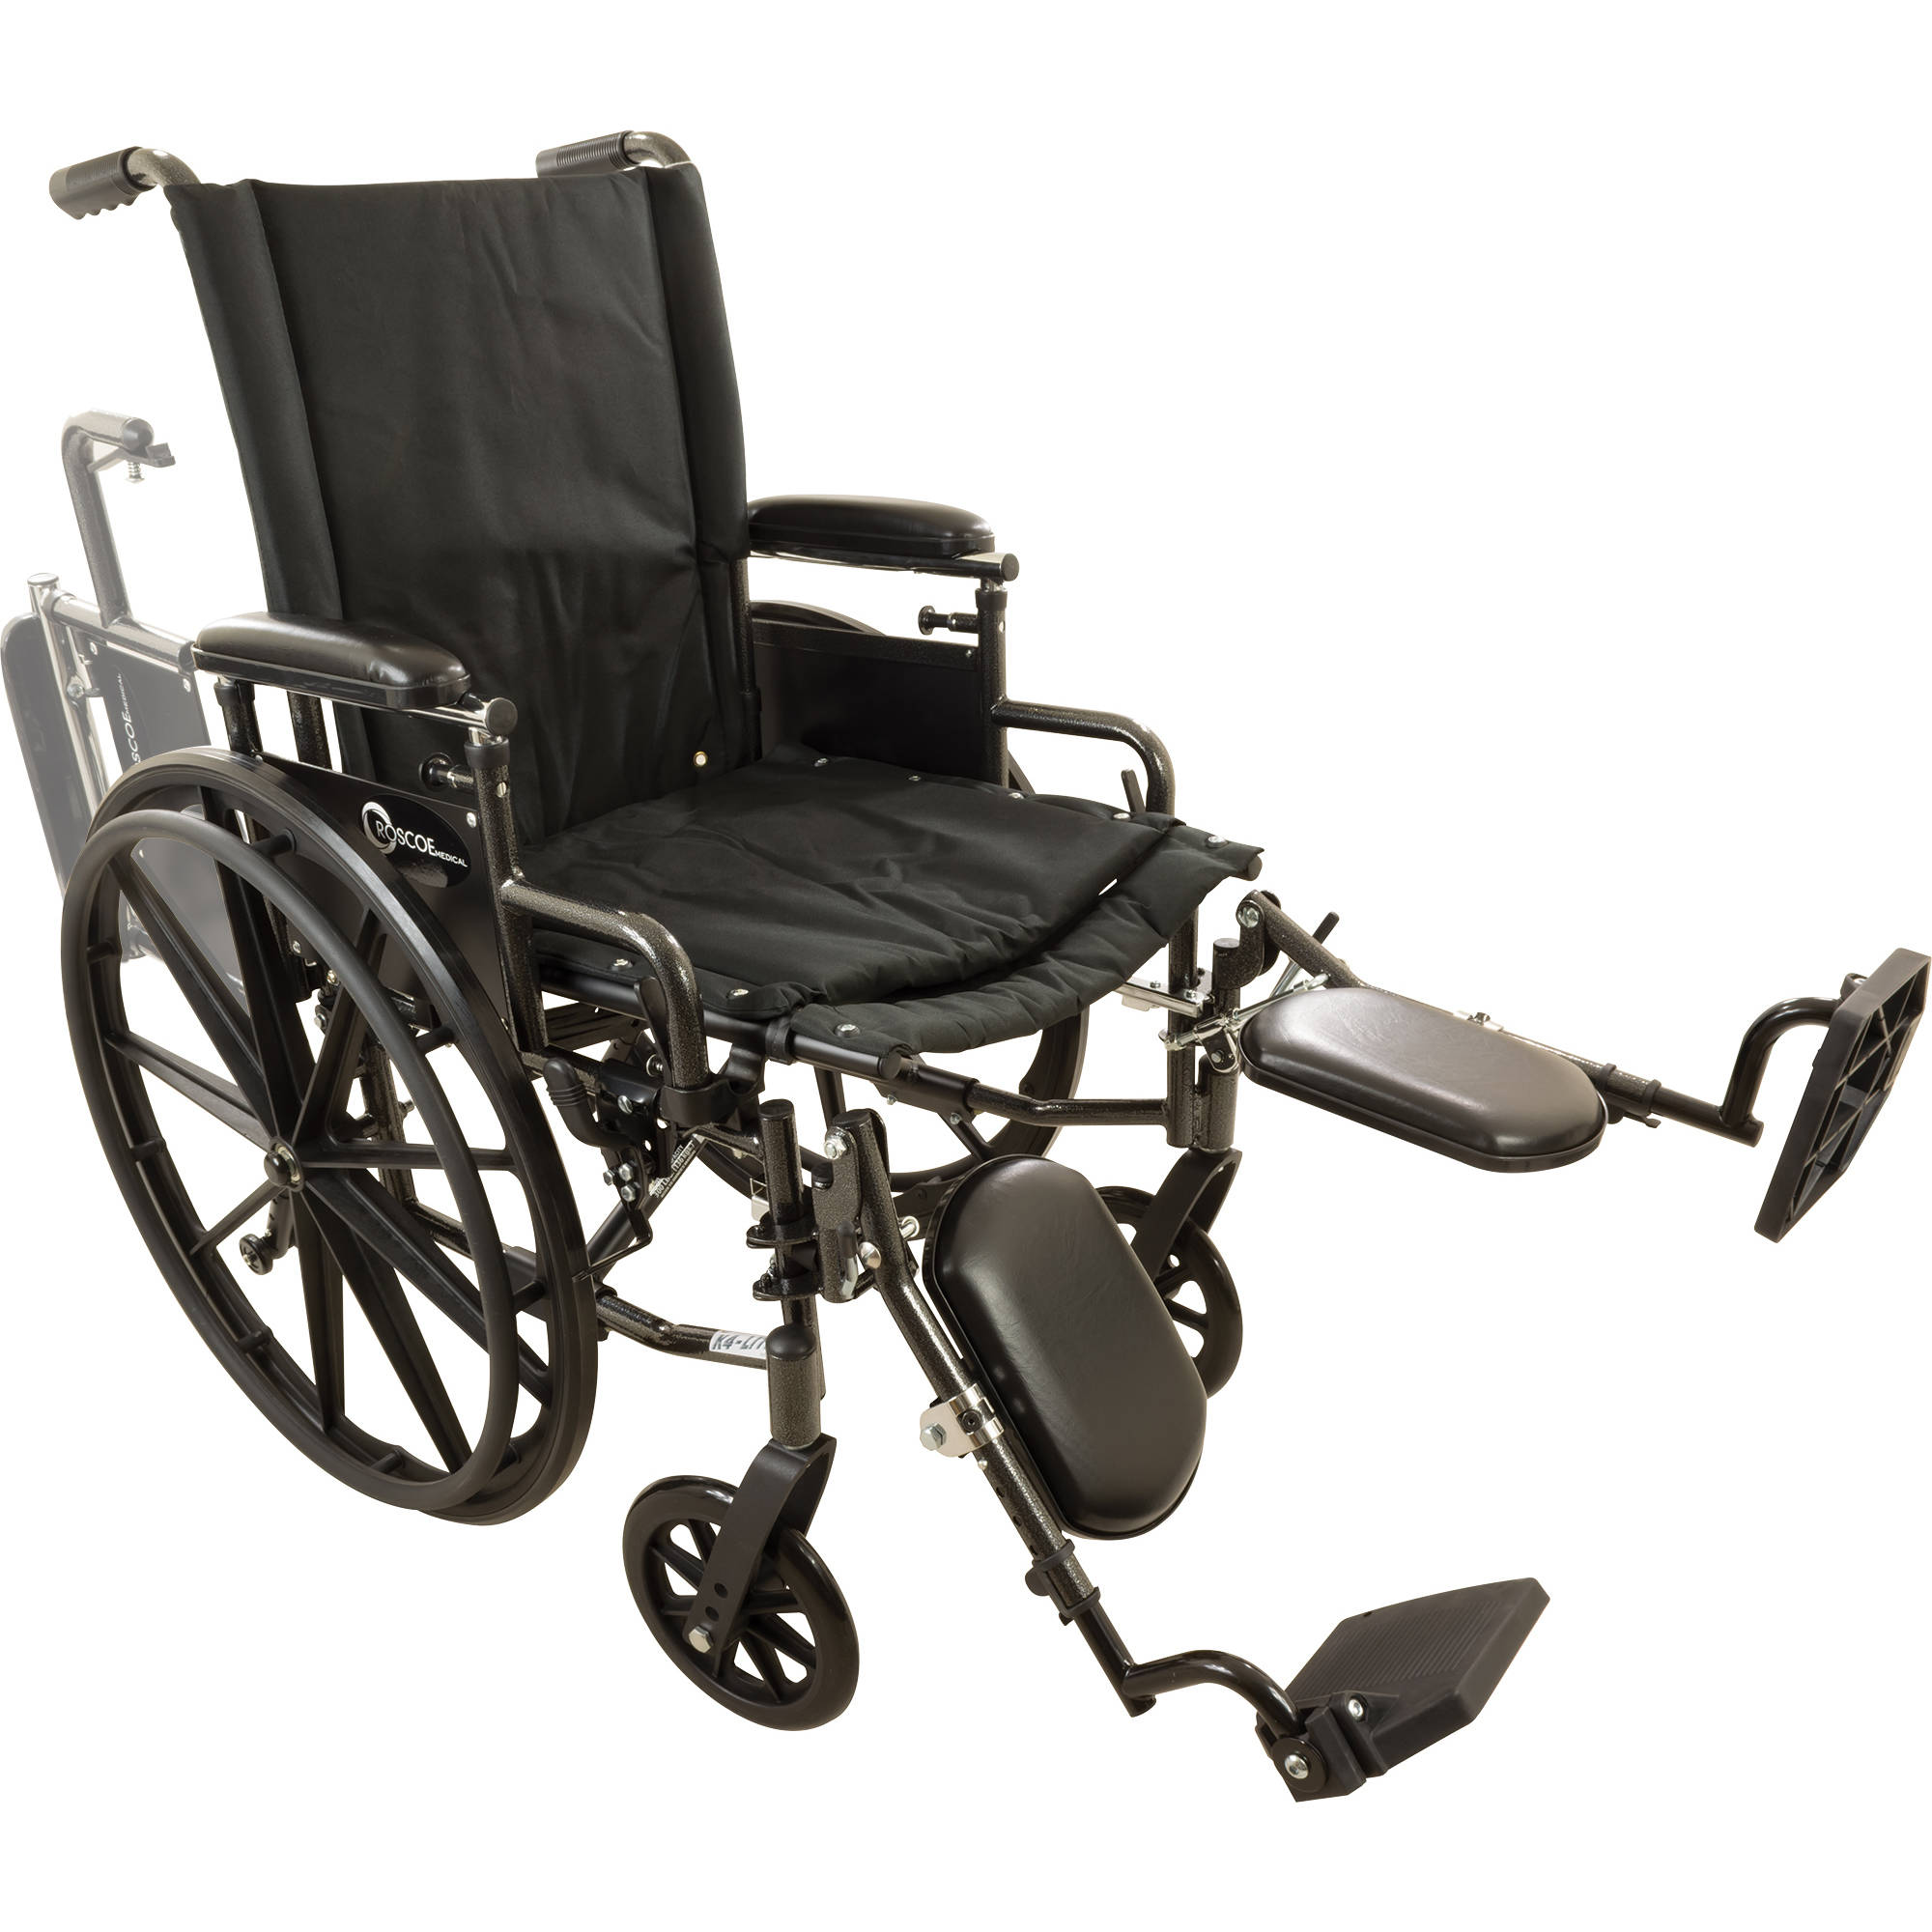 "Roscoe Onyx K4 Wheelchair, 18"" with Elevating Legrests"